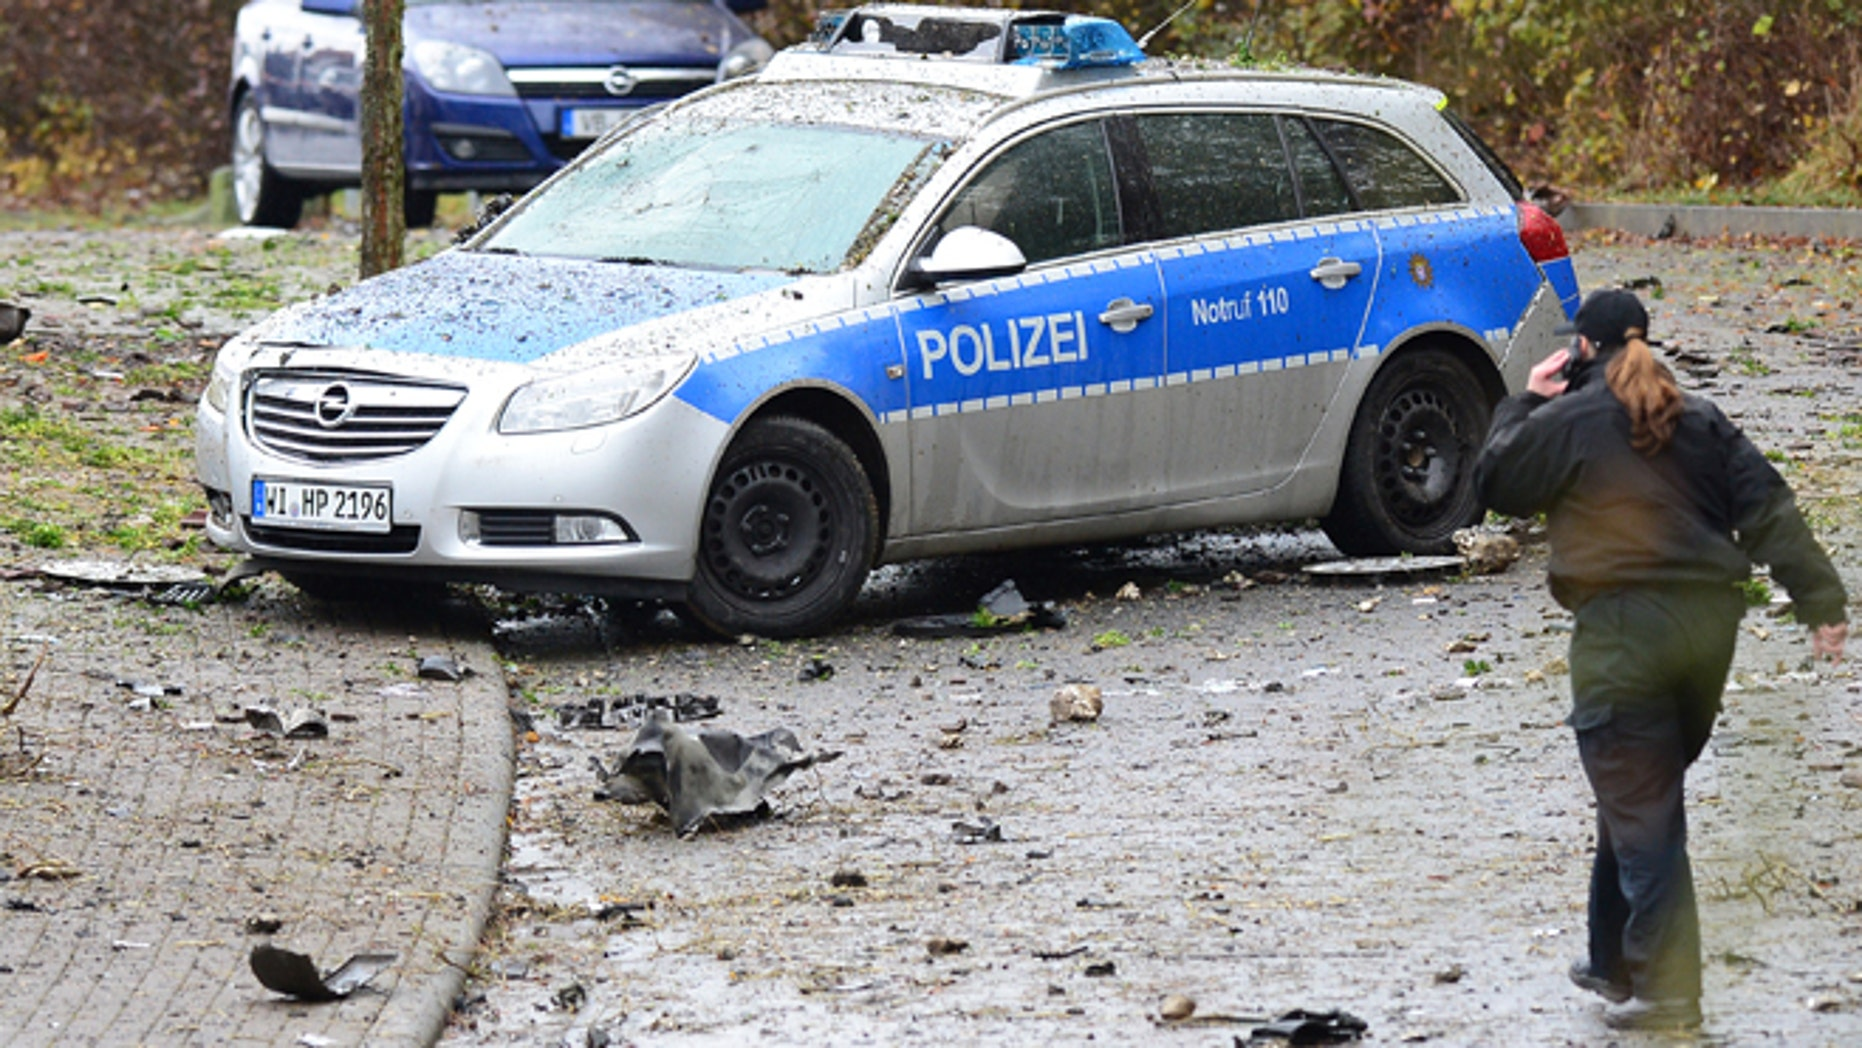 Nov. 16, 2014: A police woman passes a destroyed police car near Homberg  Germany. (AP/dpa,Boris Roessler)